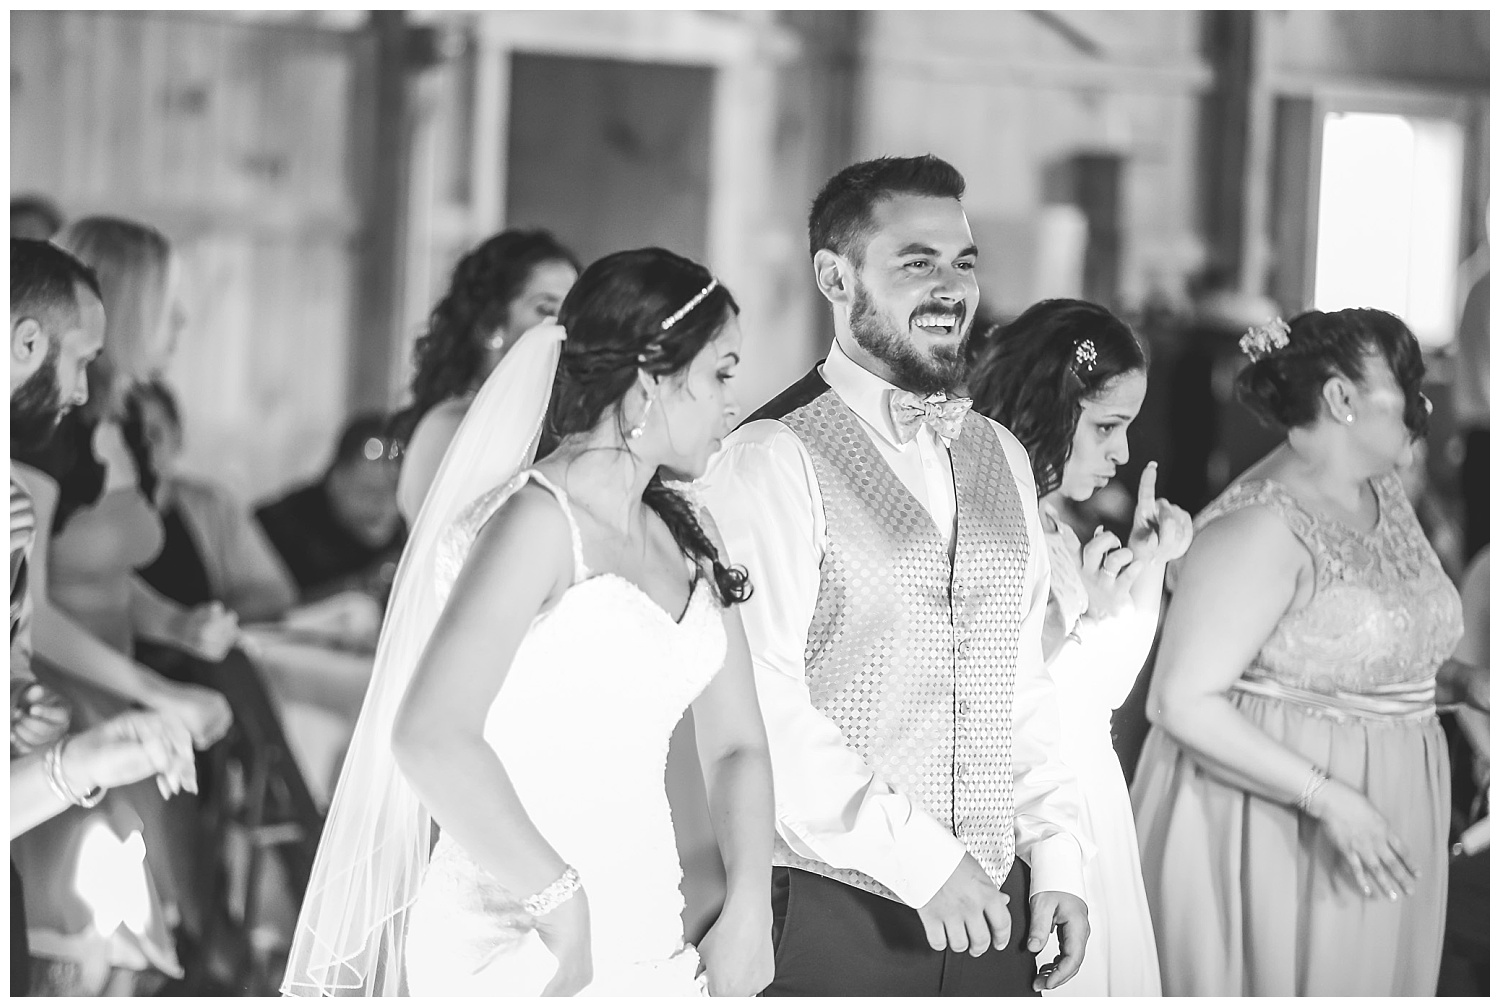 bride and groom dance at reception (black and white)